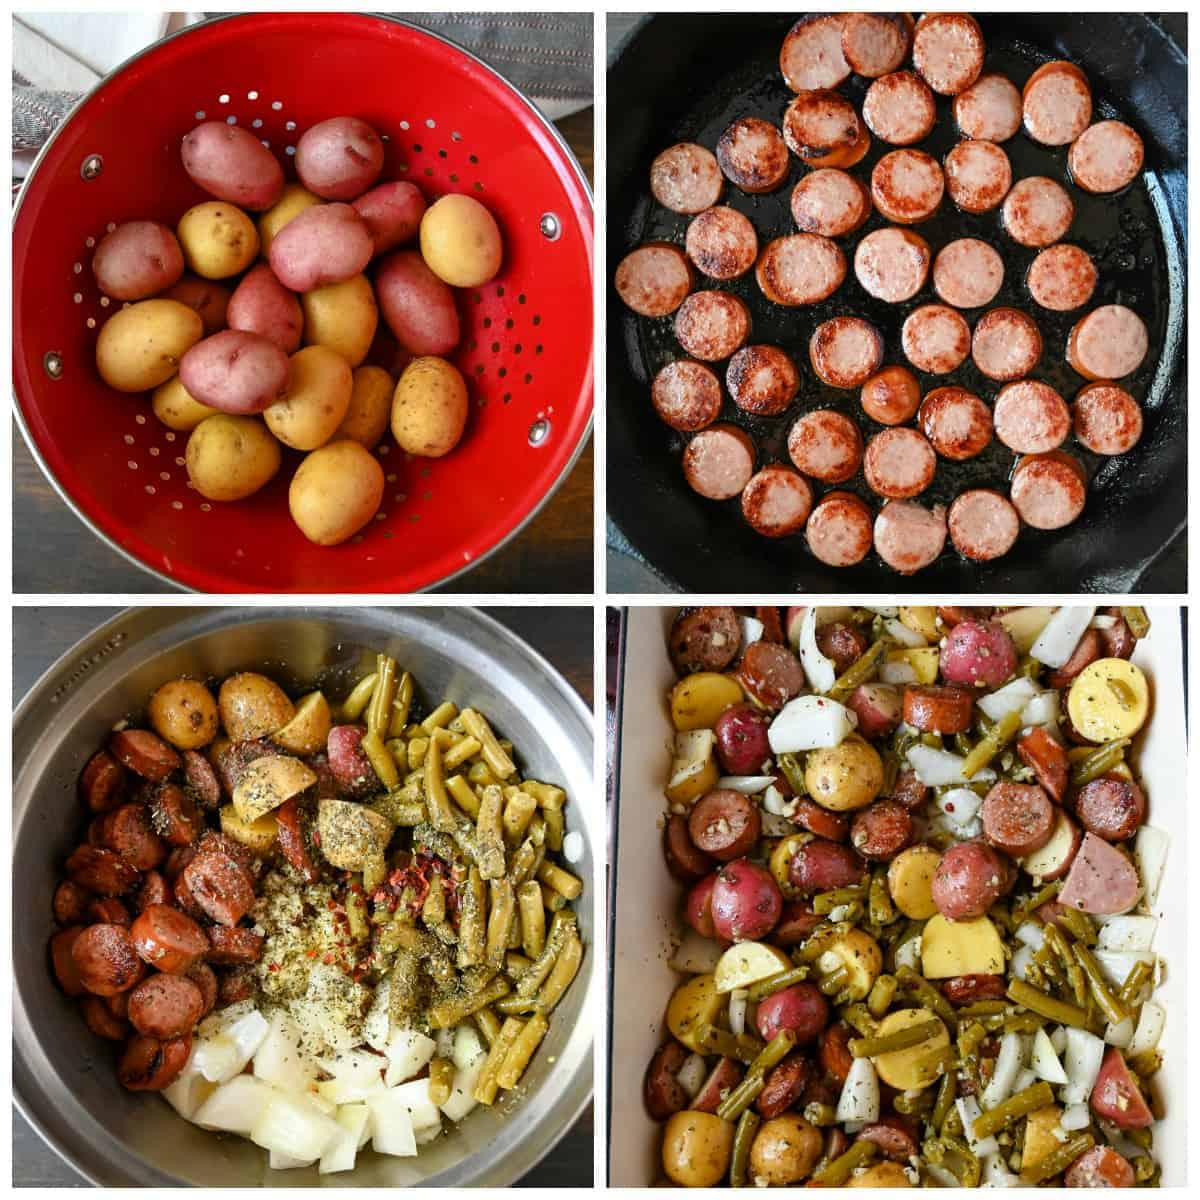 Four step by step photos. First one, baby creamer potatoes in a red colander. Second one, sliced sausages being browned in a cast iron skillet. Third one, all the ingredients being tossed together in a metal mixing bowl. Fourth one, All the ingredients in a 9x13 baking dish and ready to go in the oven.